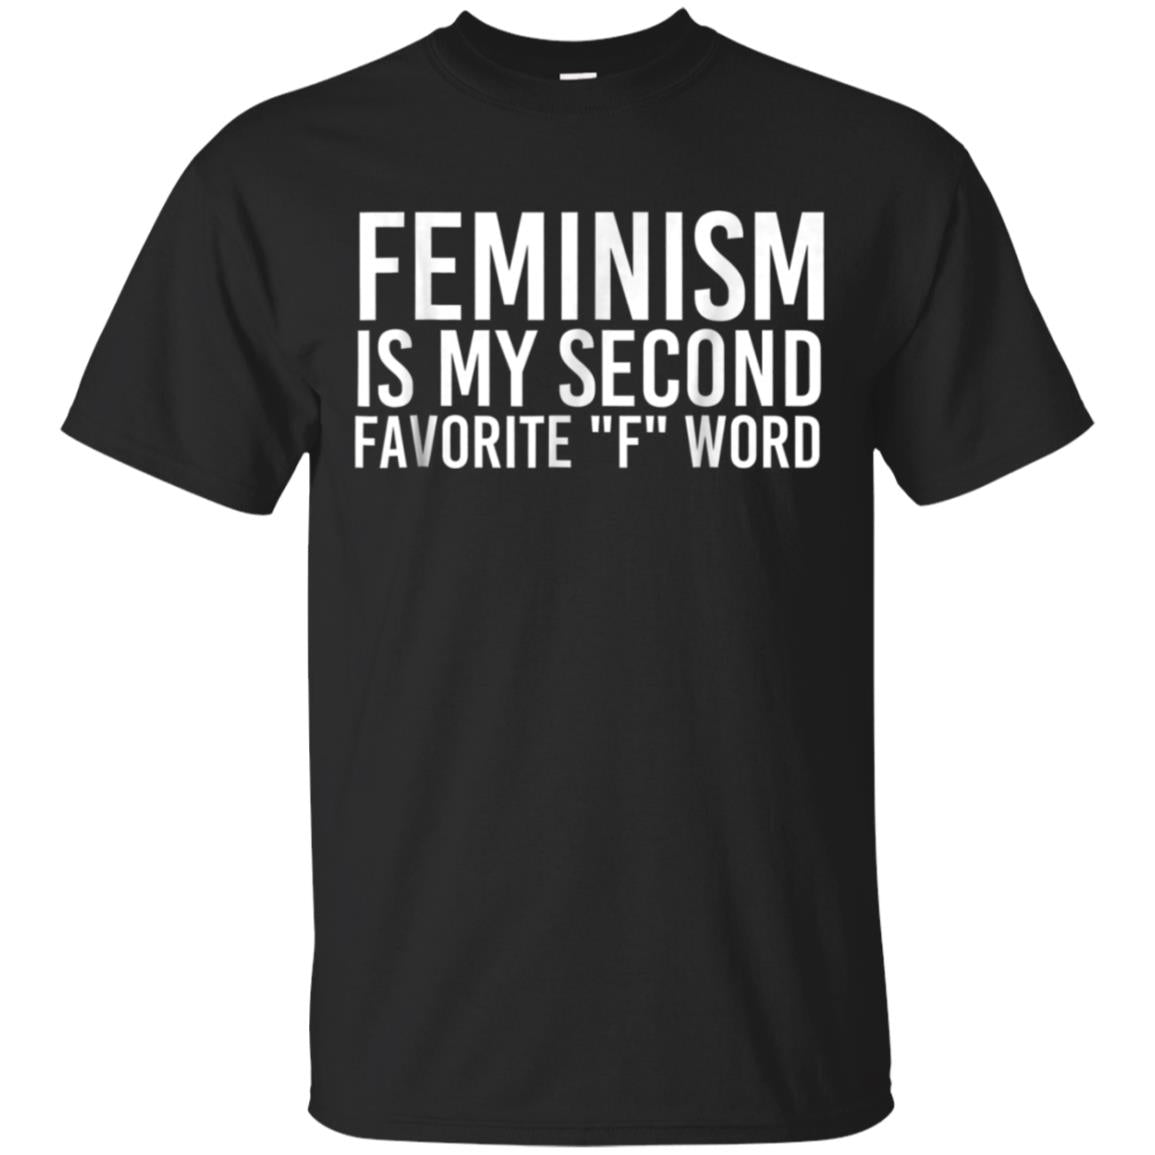 FEMINISM IS MY SECOND FAVORITE F WORD Shirt Funny Gift Idea 99promocode